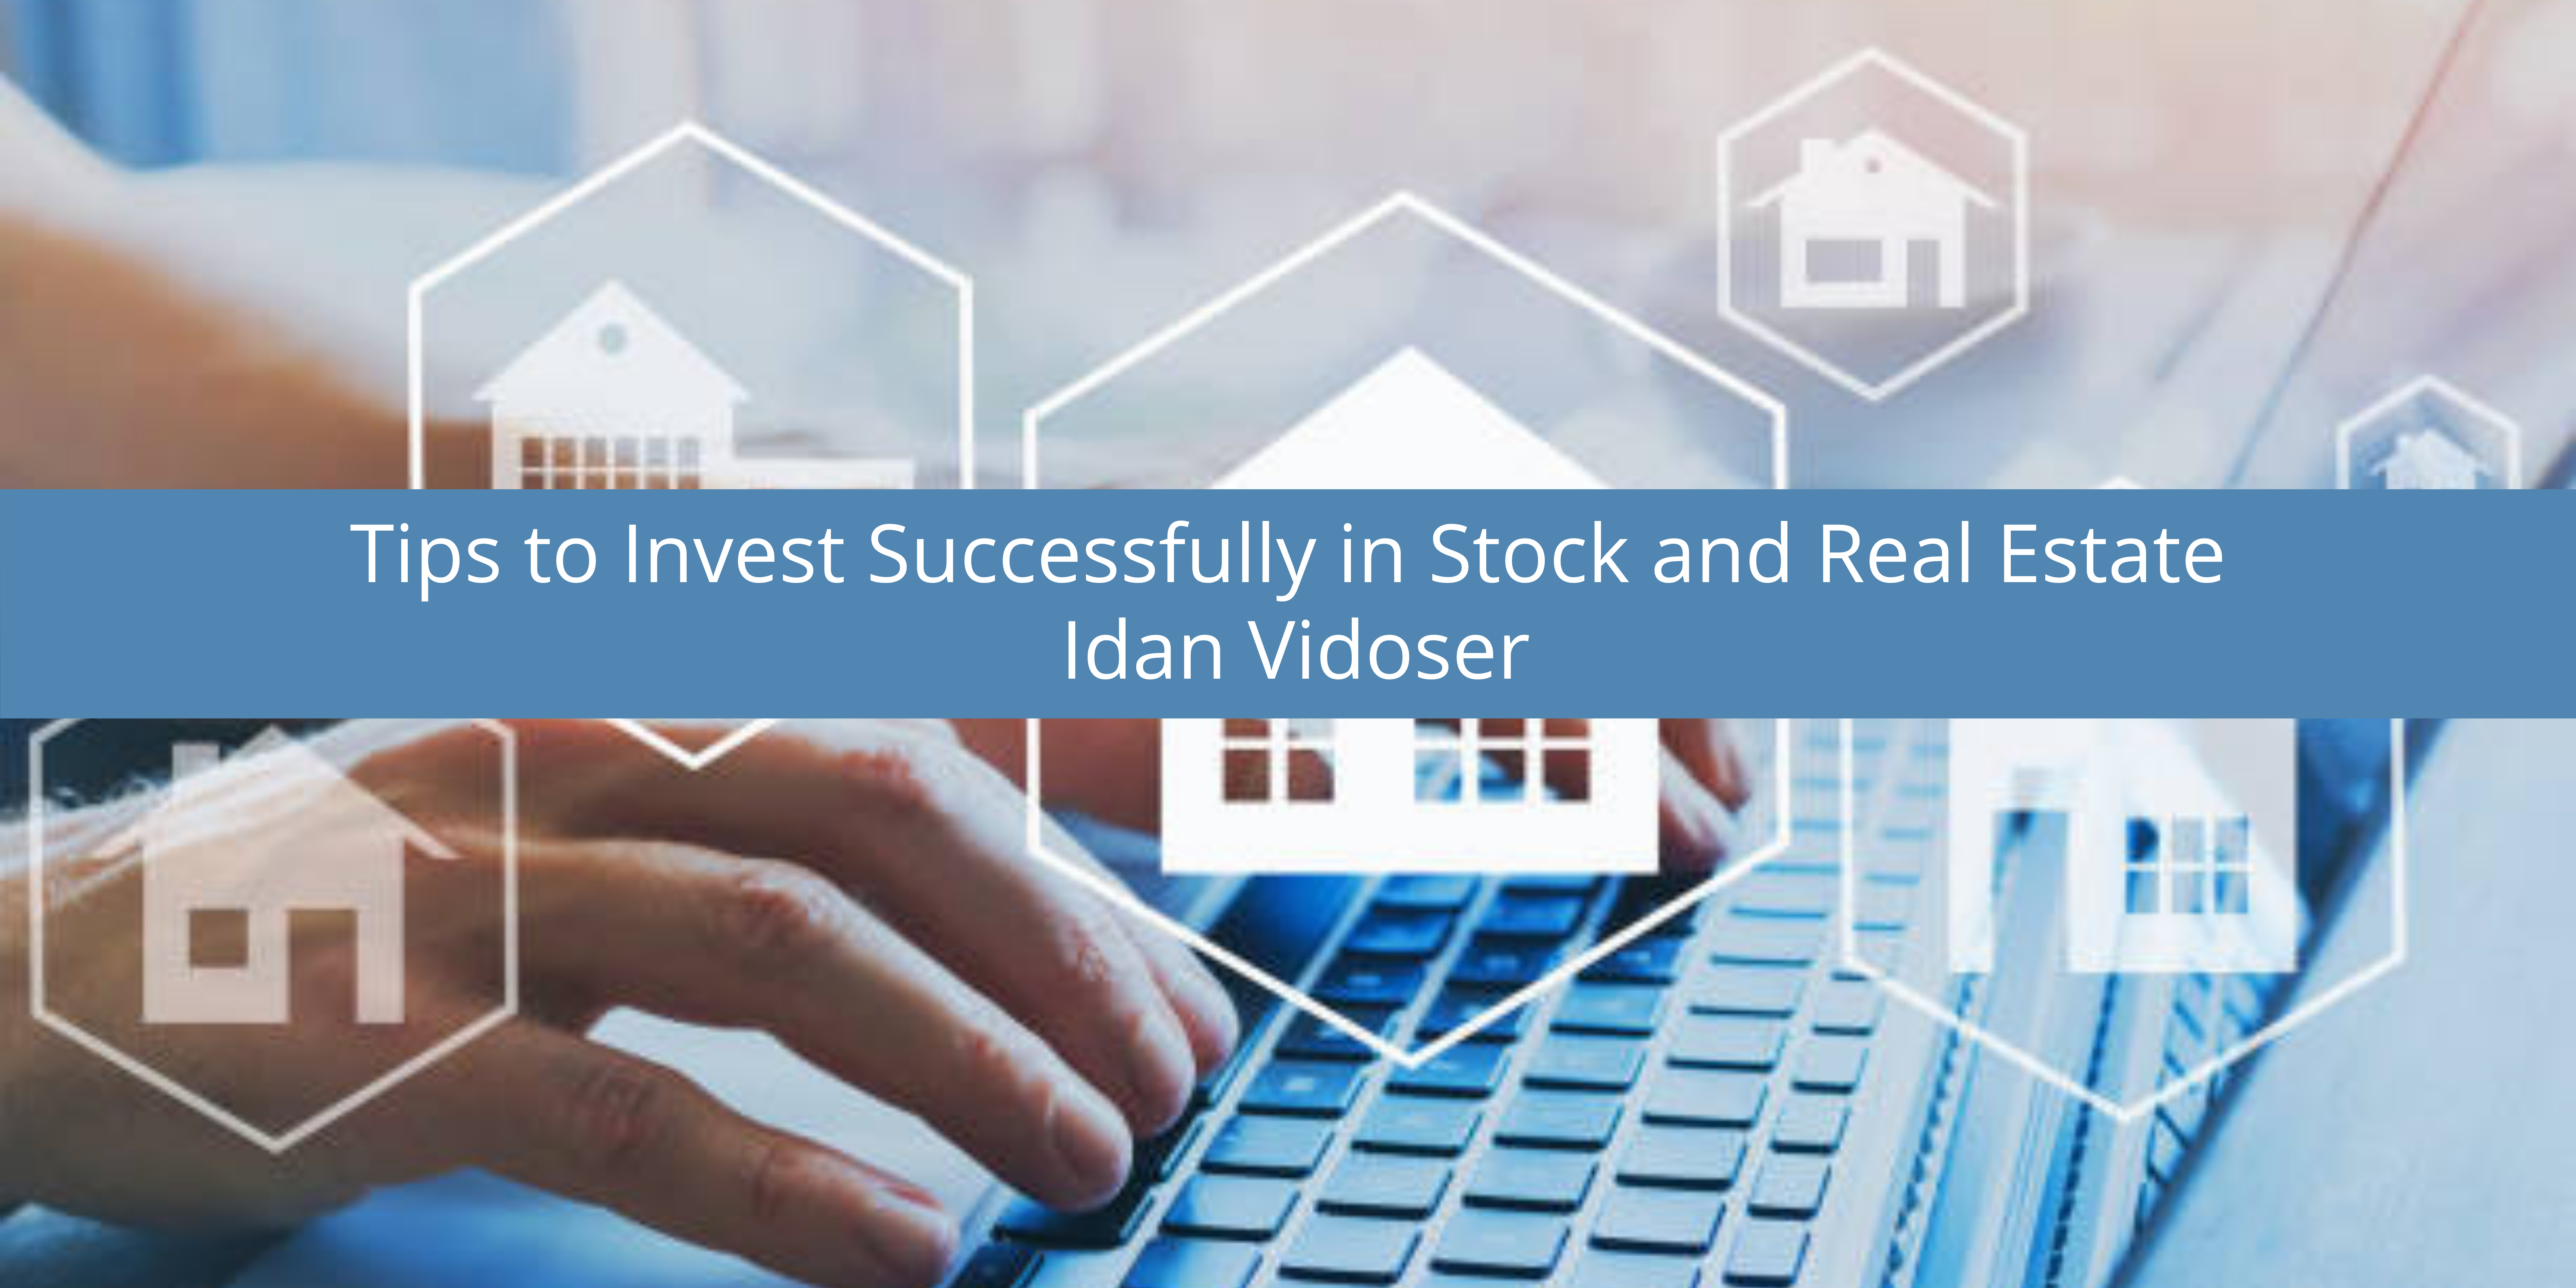 Idan Vidoser Gives Tips to Invest Successfully in Stock and Real Estate